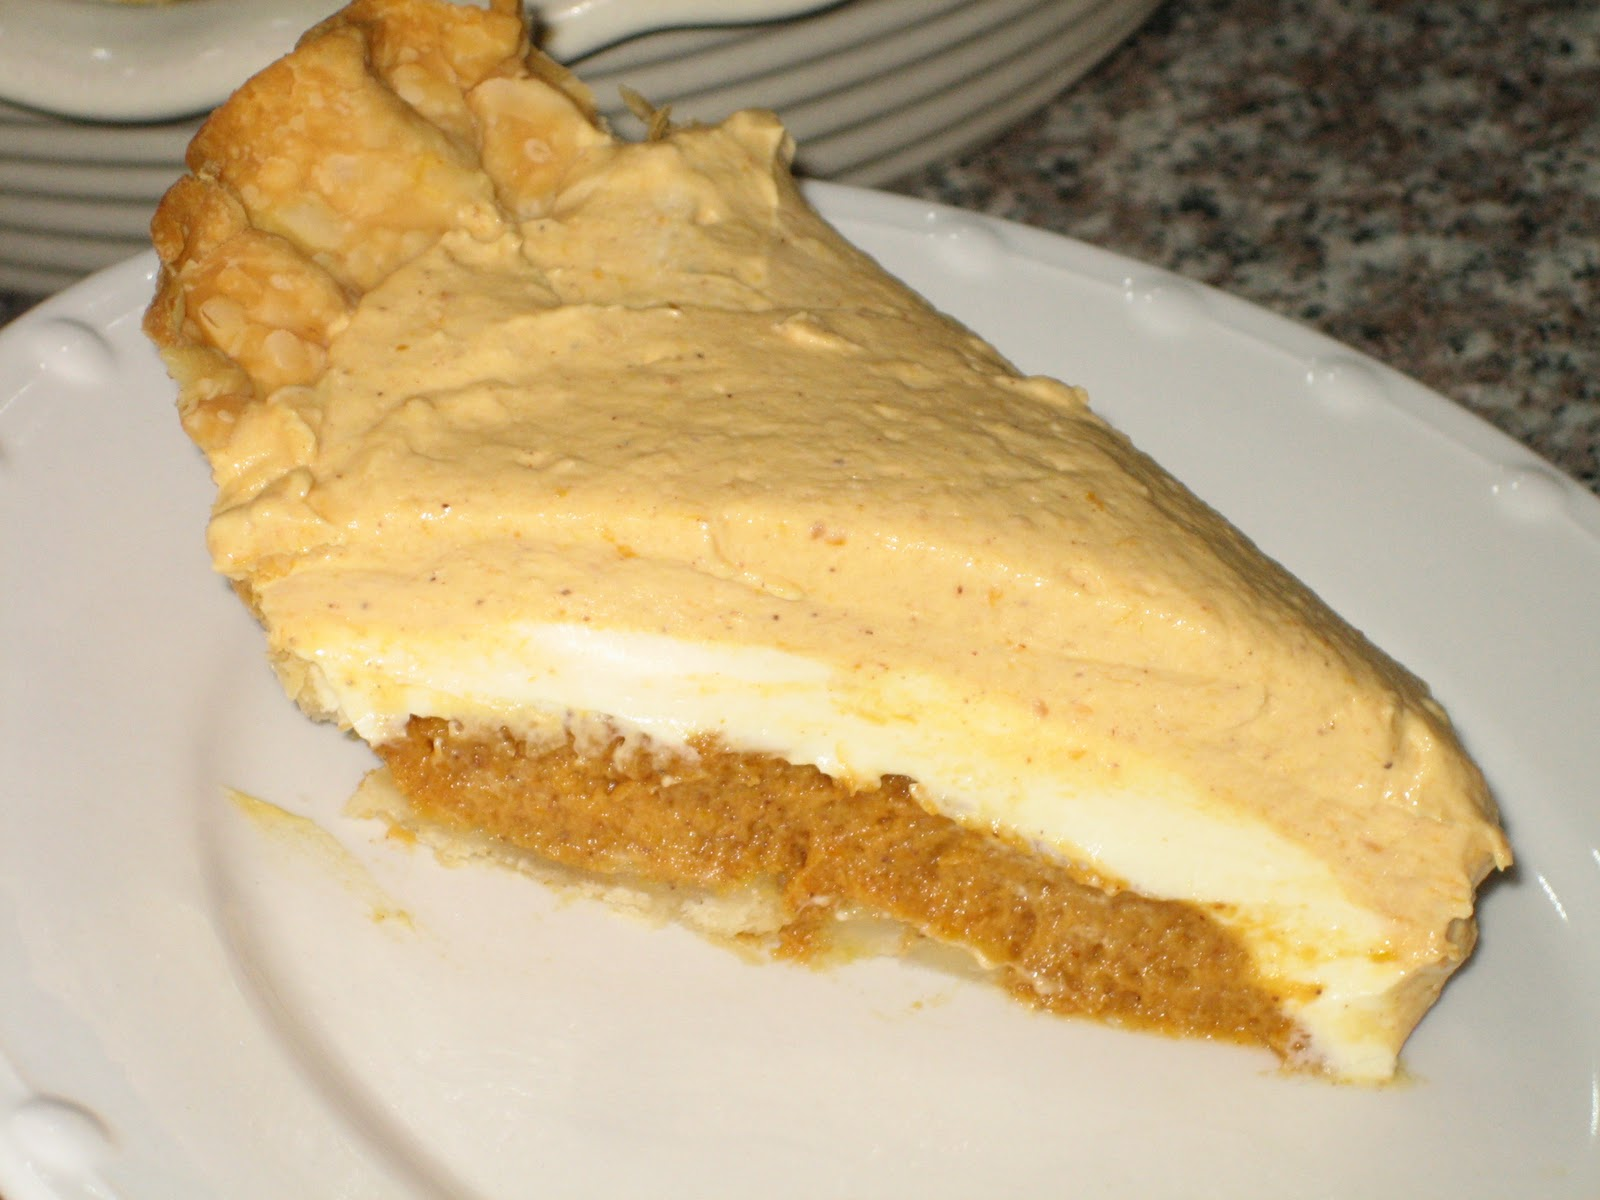 cheesecake pumpkin cheesecake pumpkin cheesecake pumpkin cheesecake ii ...